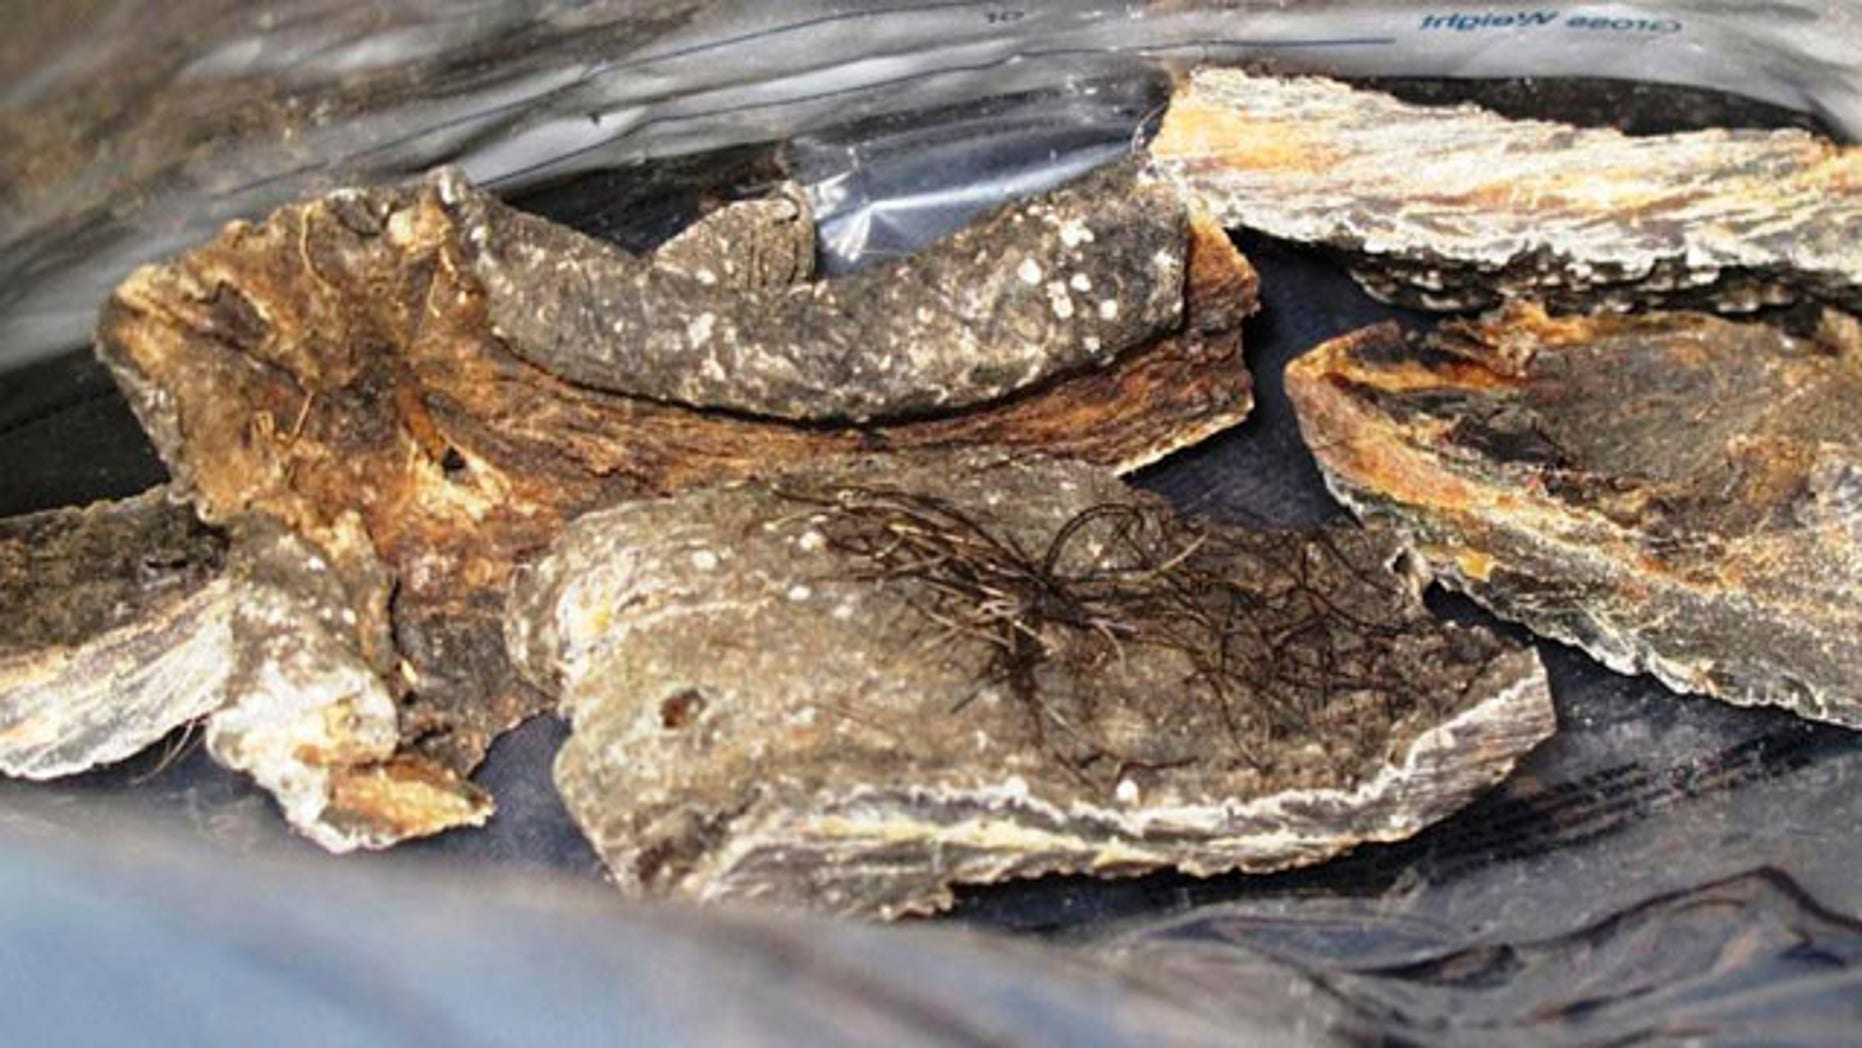 This photo released by U.S. Customs & Border Protection, shows elephant meat, one of several contraband items seized by the agency at Los Angeles International Airport between May 6 and 10.